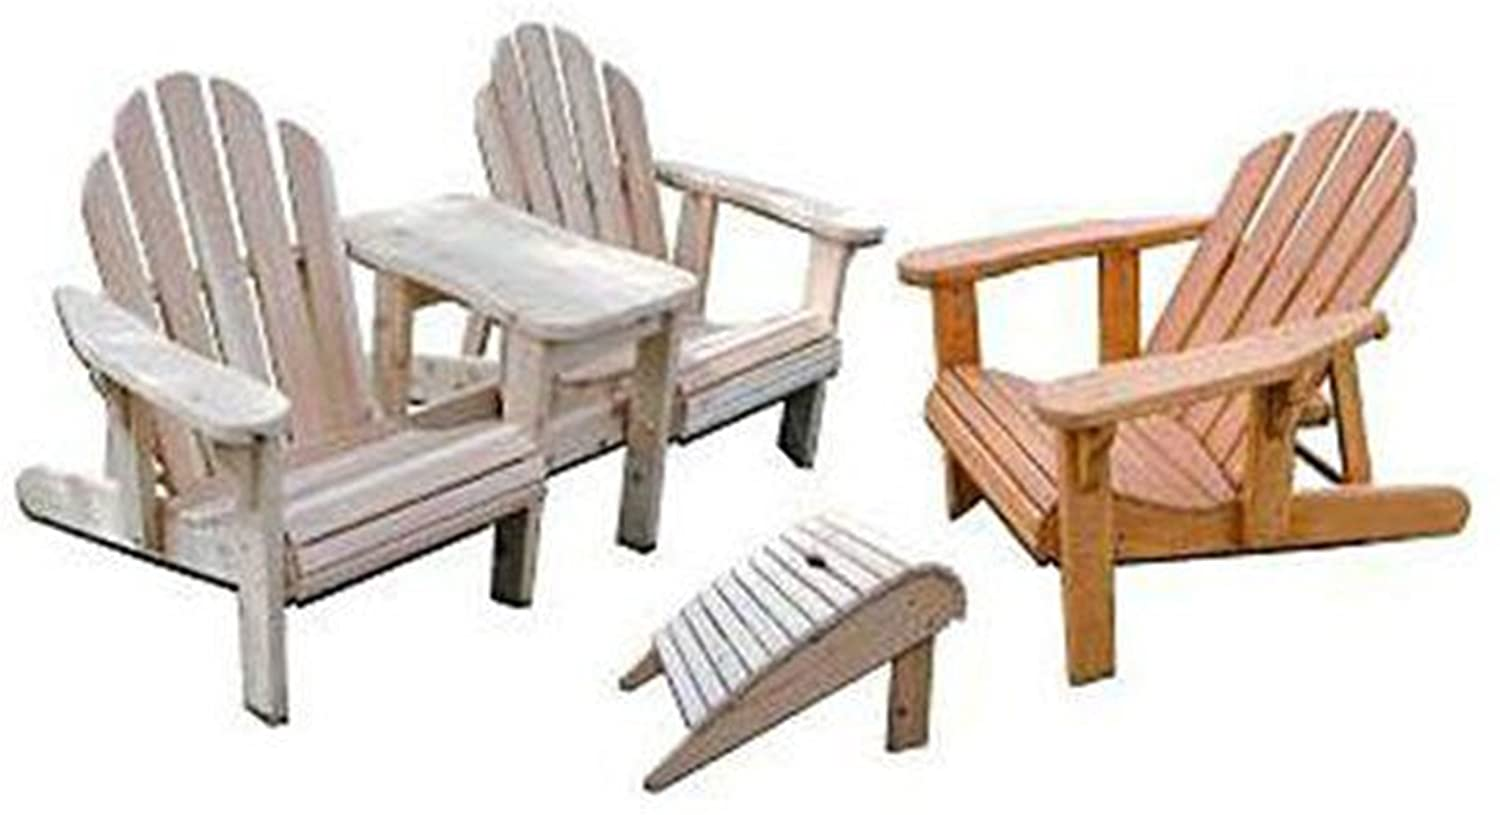 Woodworking Project Paper Plan to Build Adirondack Plan Value Pack - Outdoor Furniture Woodworking Project Plans -